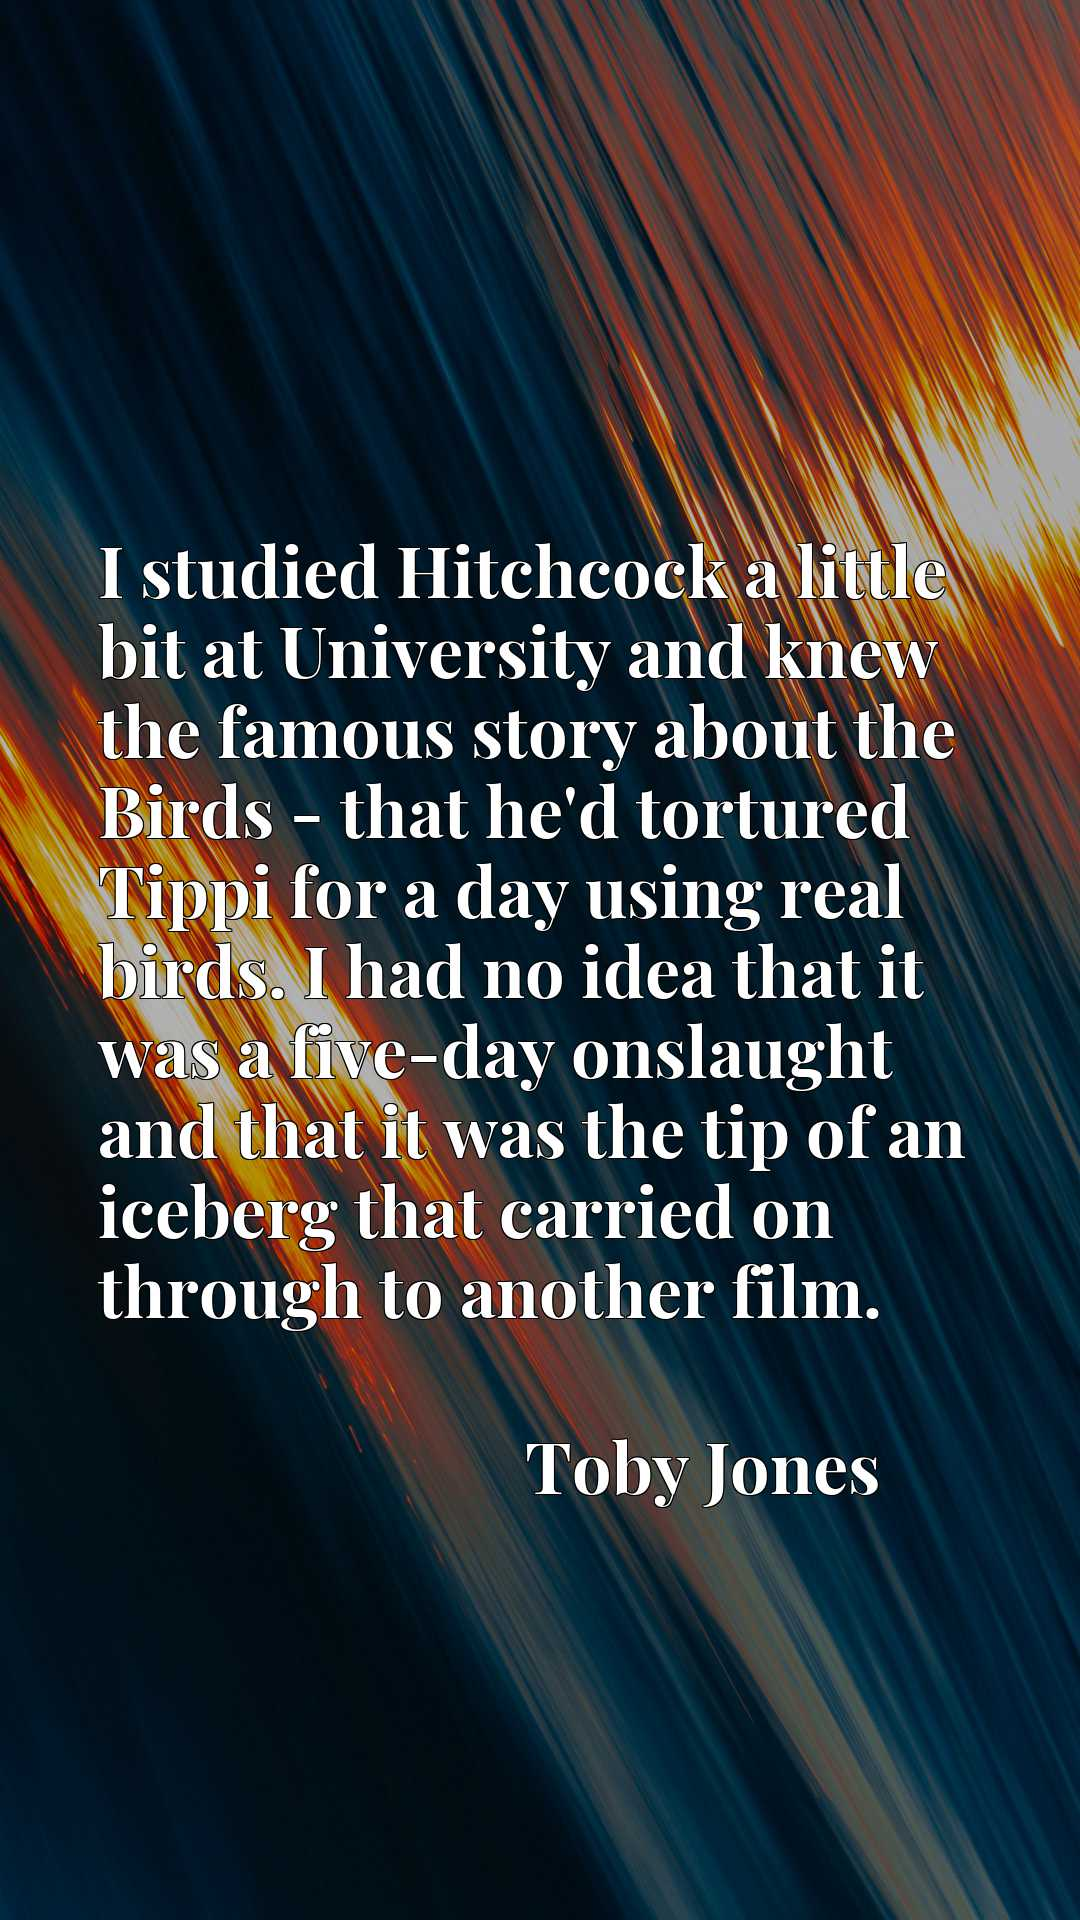 I studied Hitchcock a little bit at University and knew the famous story about the Birds - that he'd tortured Tippi for a day using real birds. I had no idea that it was a five-day onslaught and that it was the tip of an iceberg that carried on through to another film.